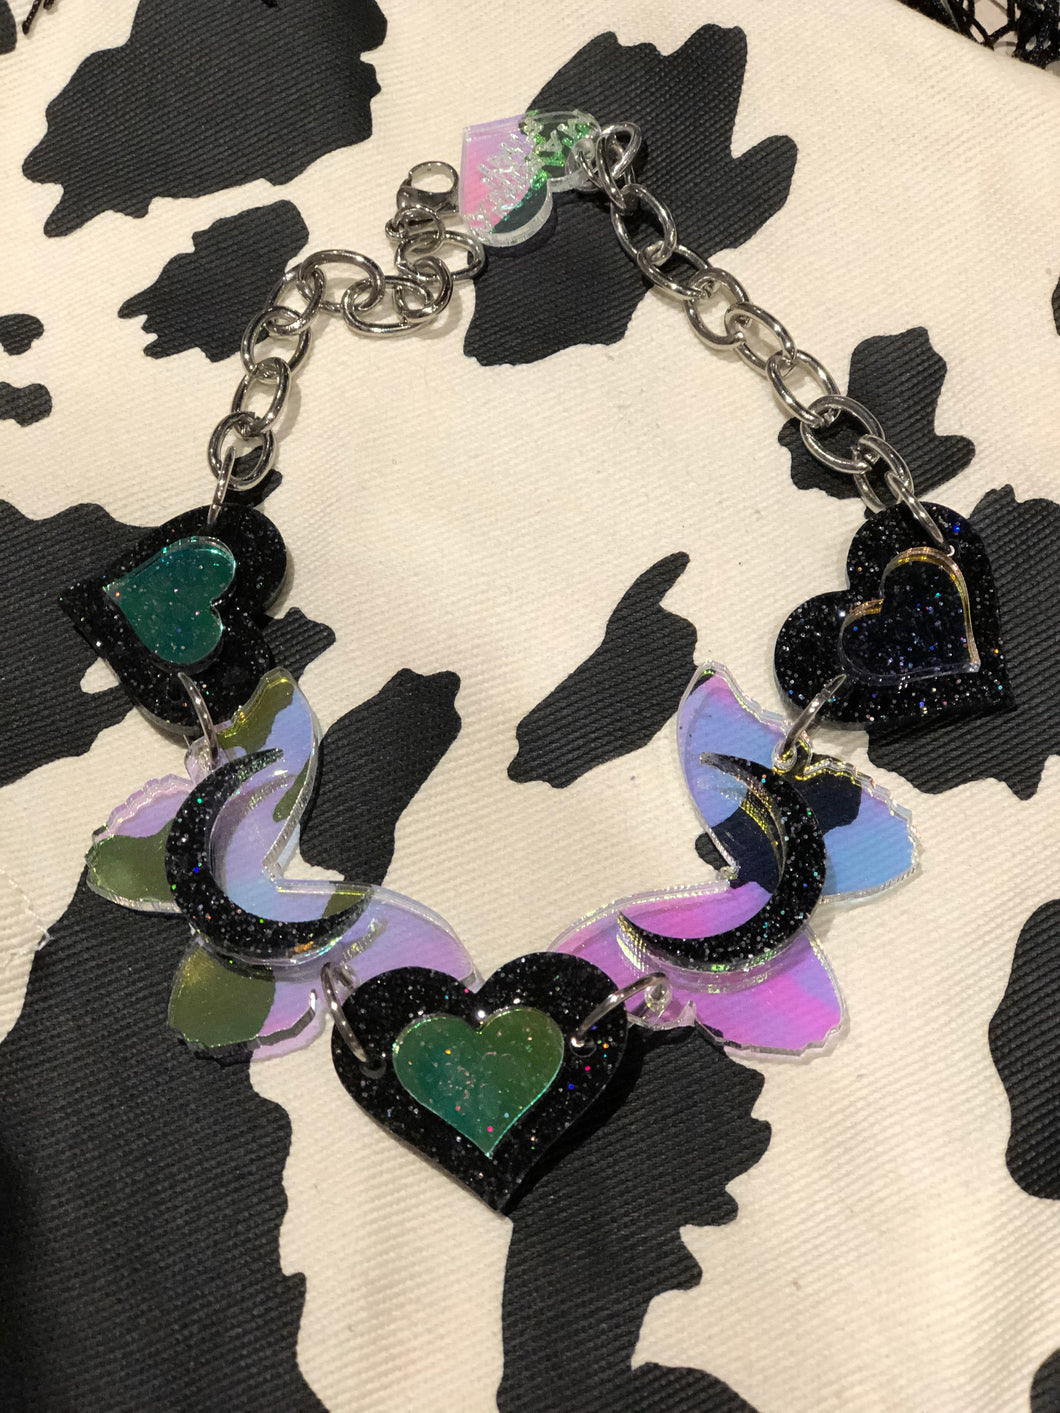 Black Glitter and Holo Heart Butterfly Choker by Marina Fini | Necklaces - 80s 90s Retro Vintage Clothing | Spark Pretty